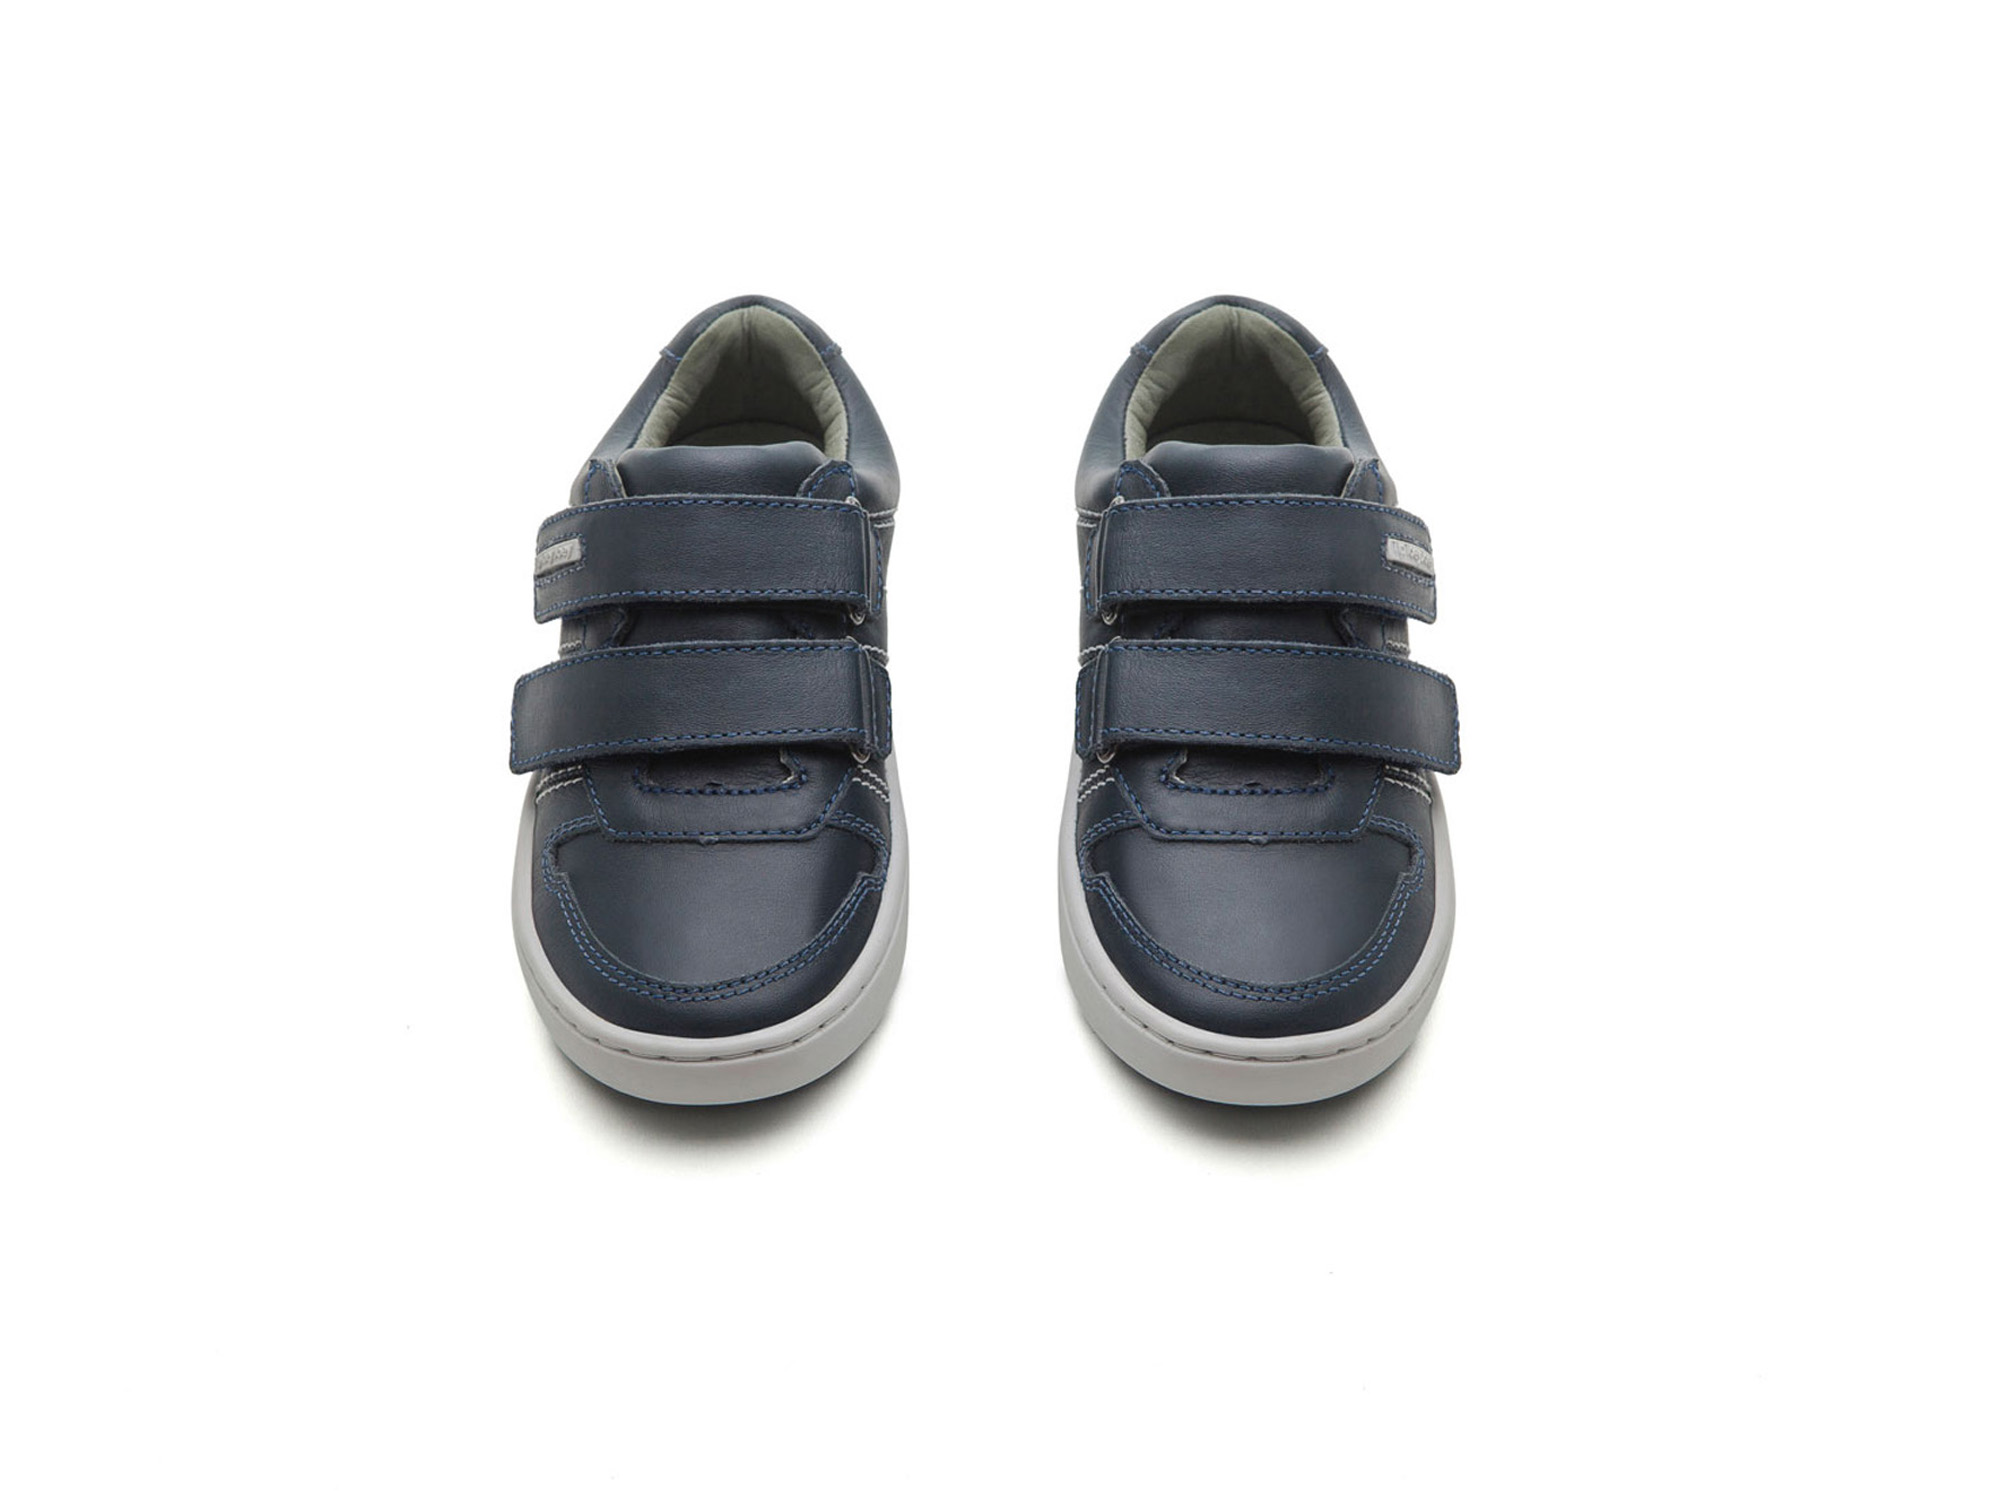 Tênis Little Dusk Navy  Toddler 2 à 4 anos - 2